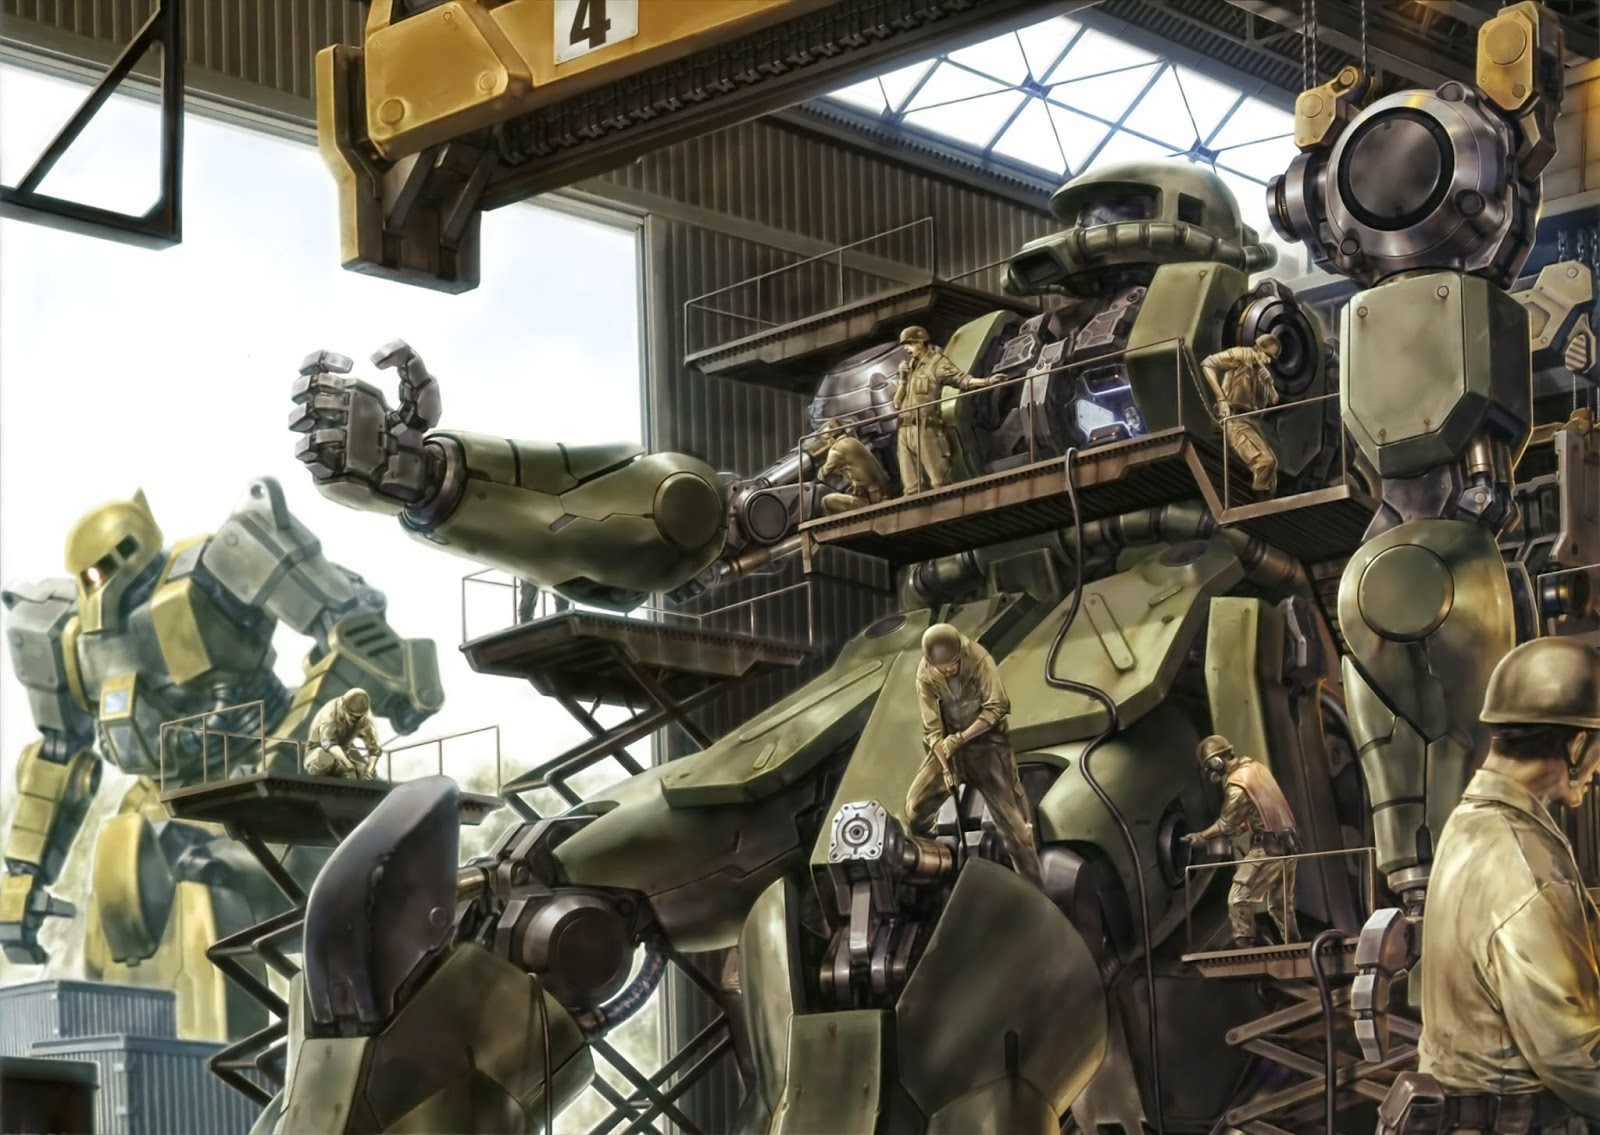 zaku_ii_construction_1.jpg